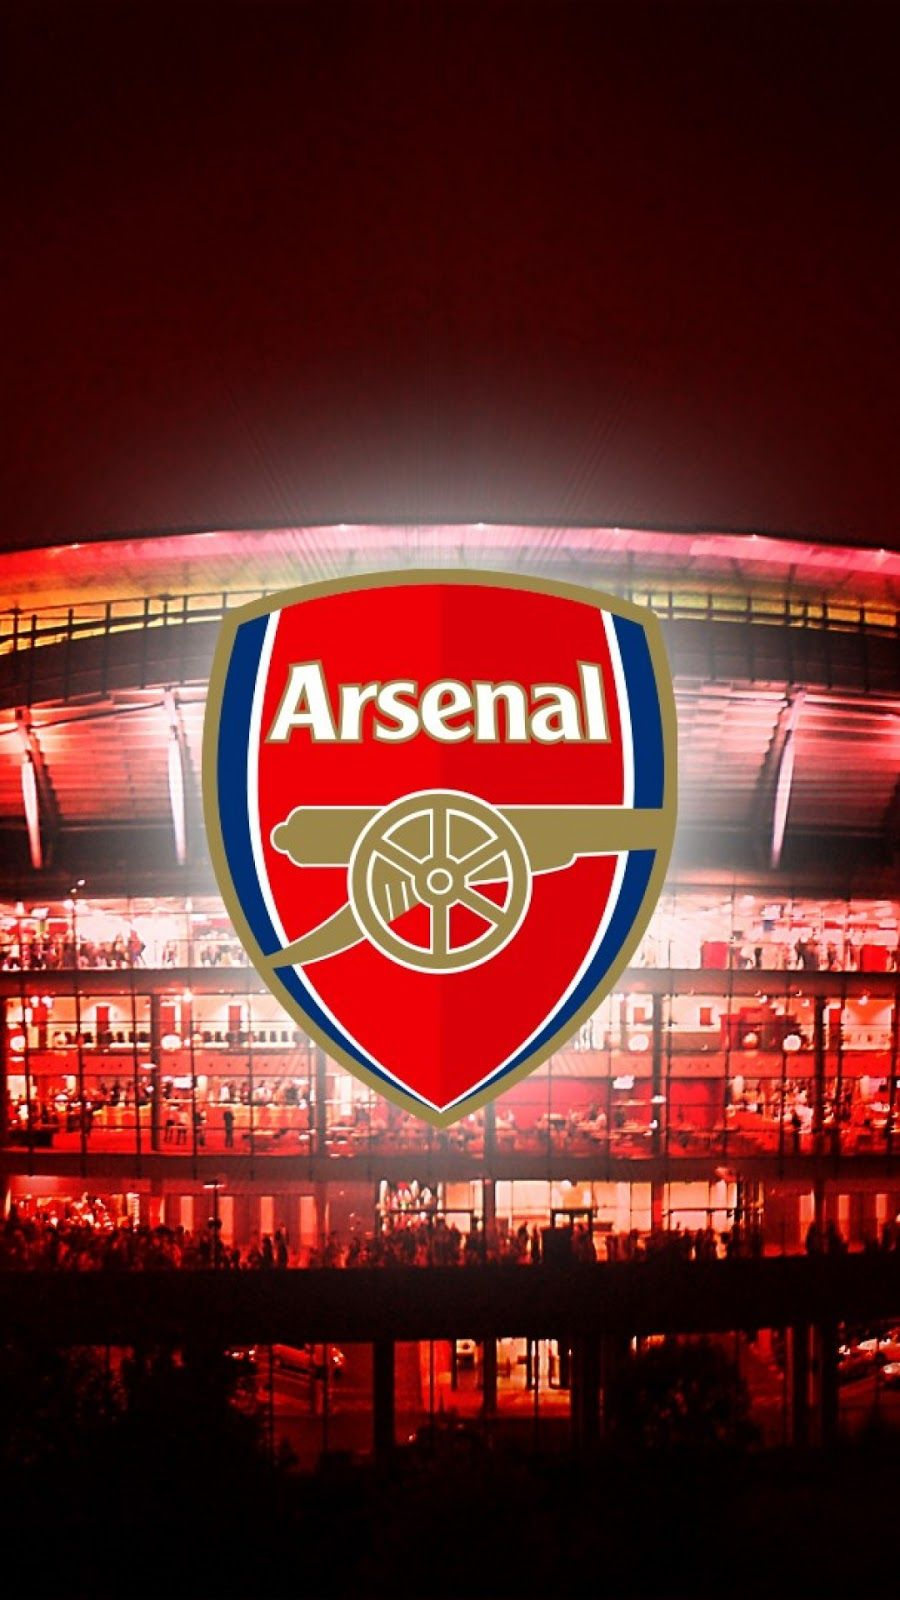 Arsenal Wallpaper Hd For Iphone X Series Andriblog001 Arsenal Wallpapers Arsenal Logo Wallpapers Arsenal